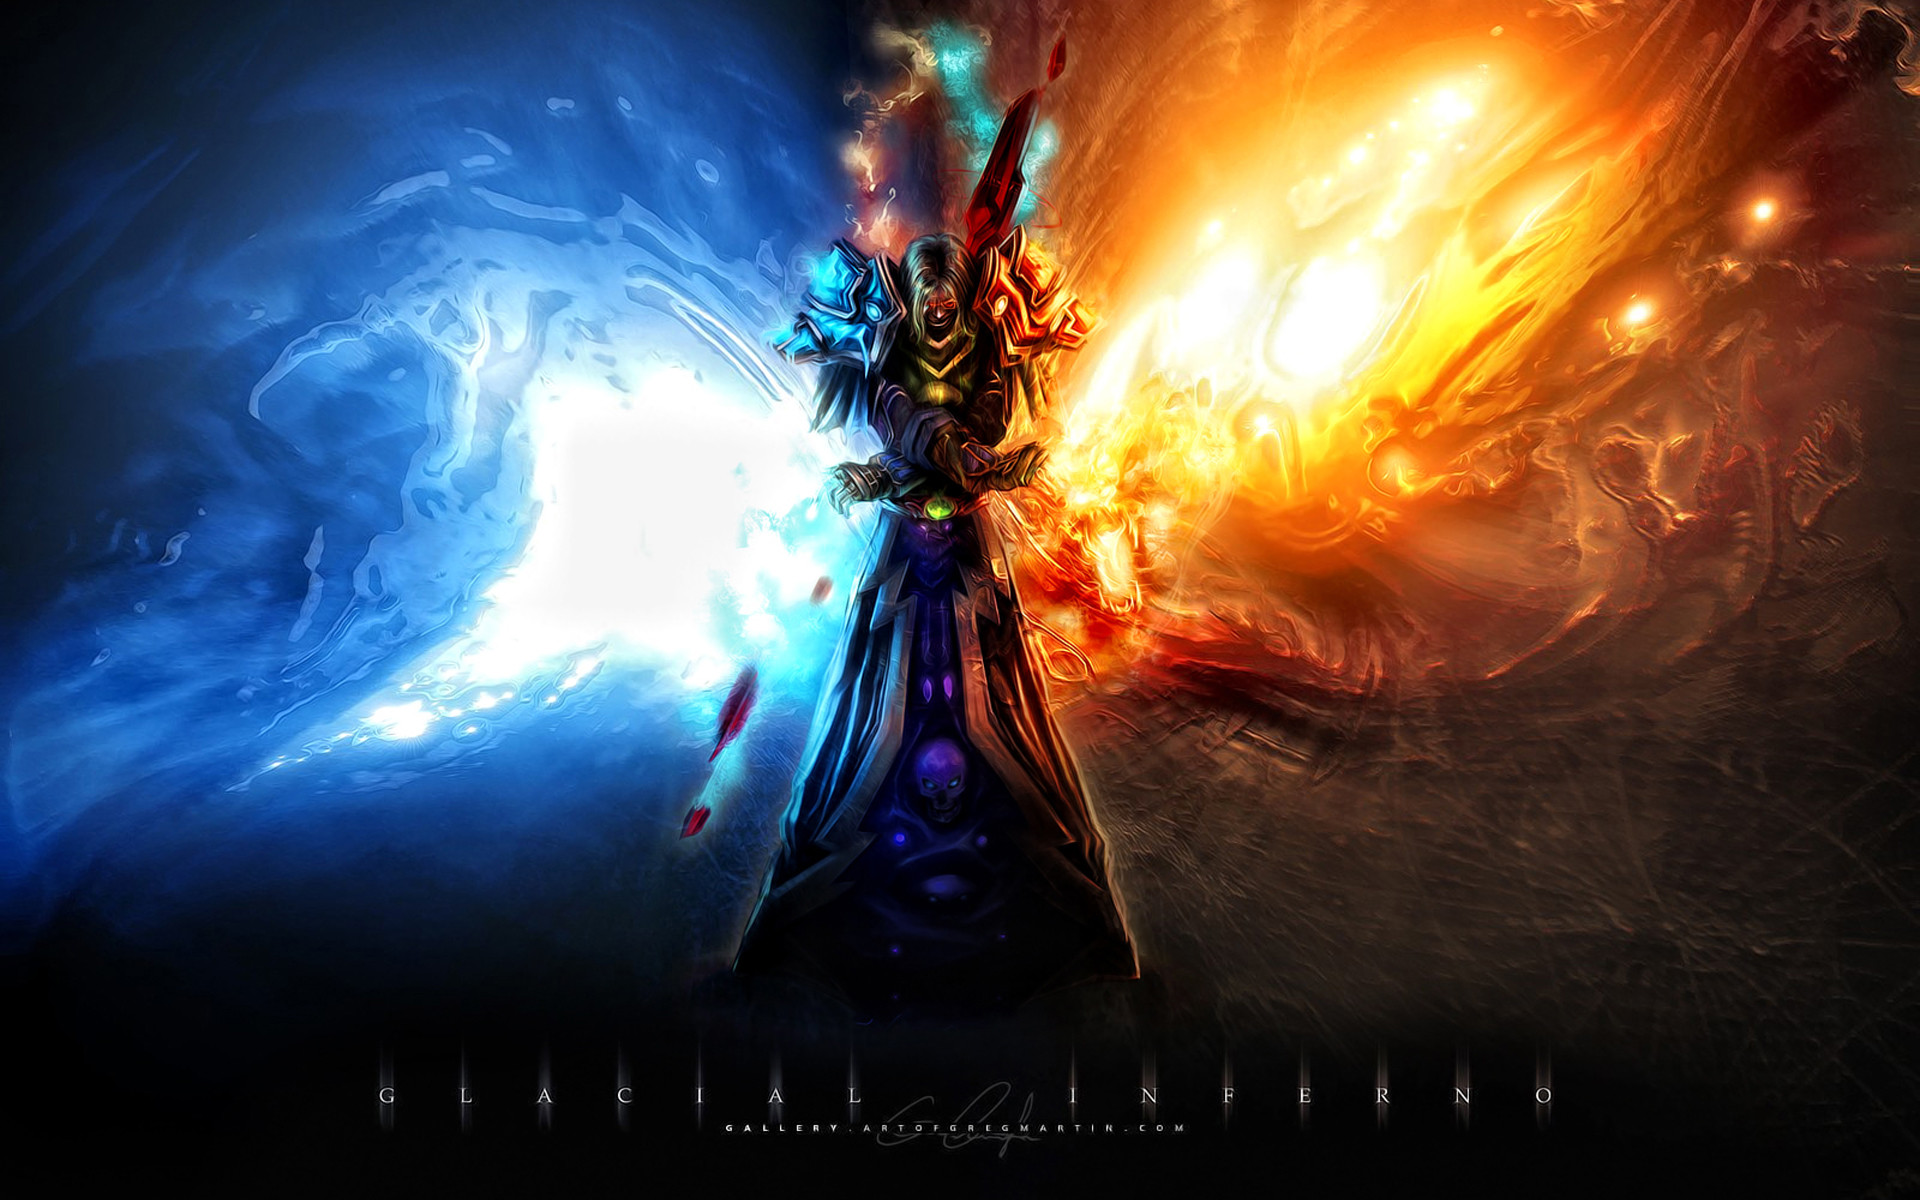 world of warcraft wallpaper frost mage – Google Search